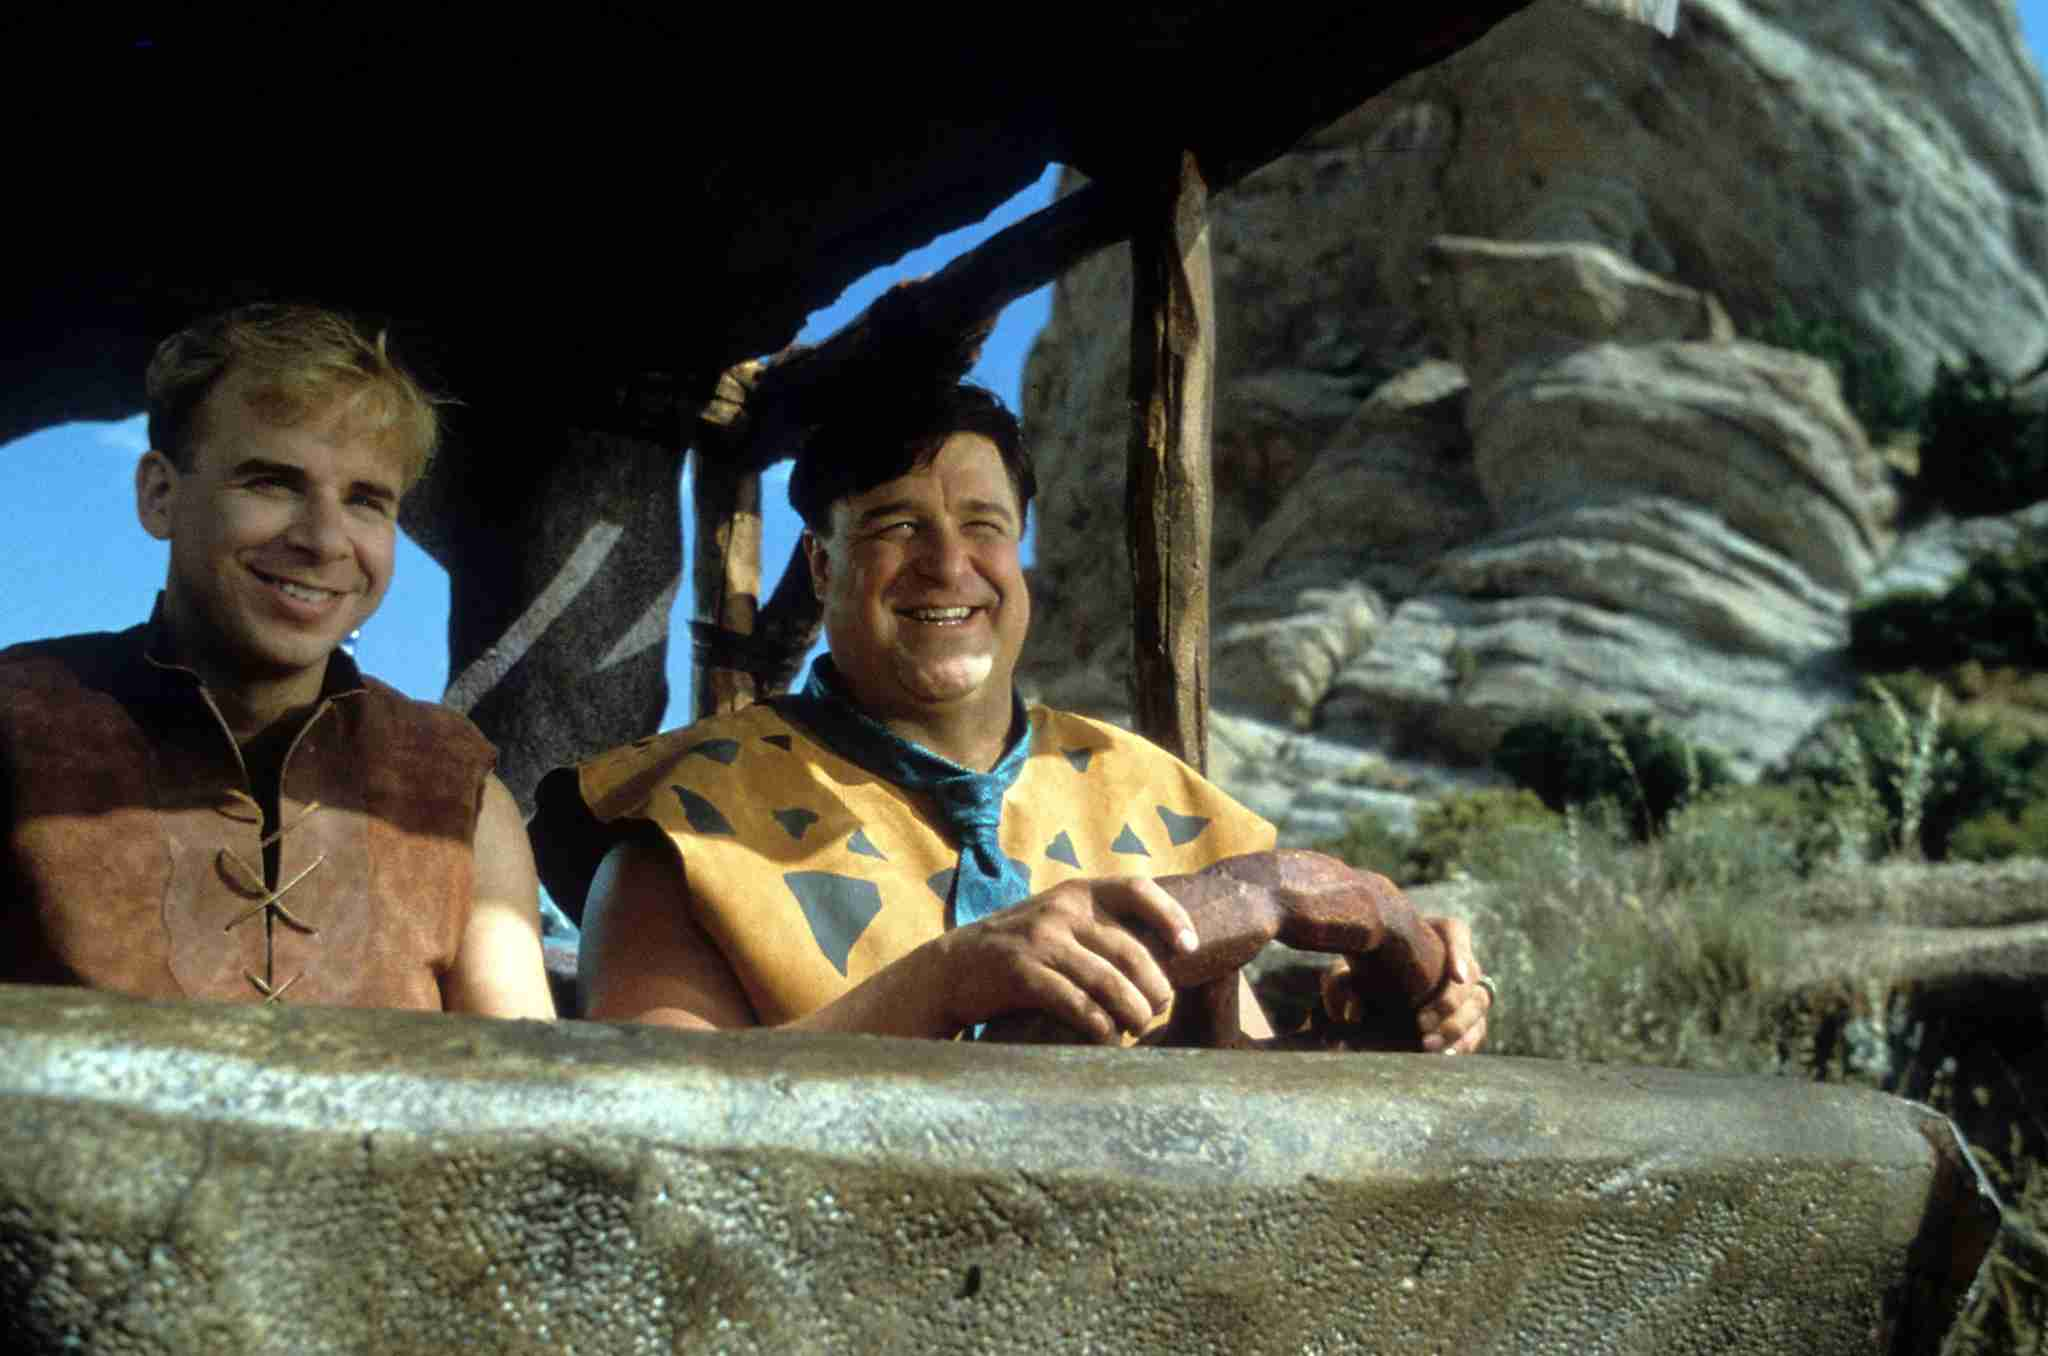 From the 1994 movie, The Flintstones (Photo by Universal/Getty Images)